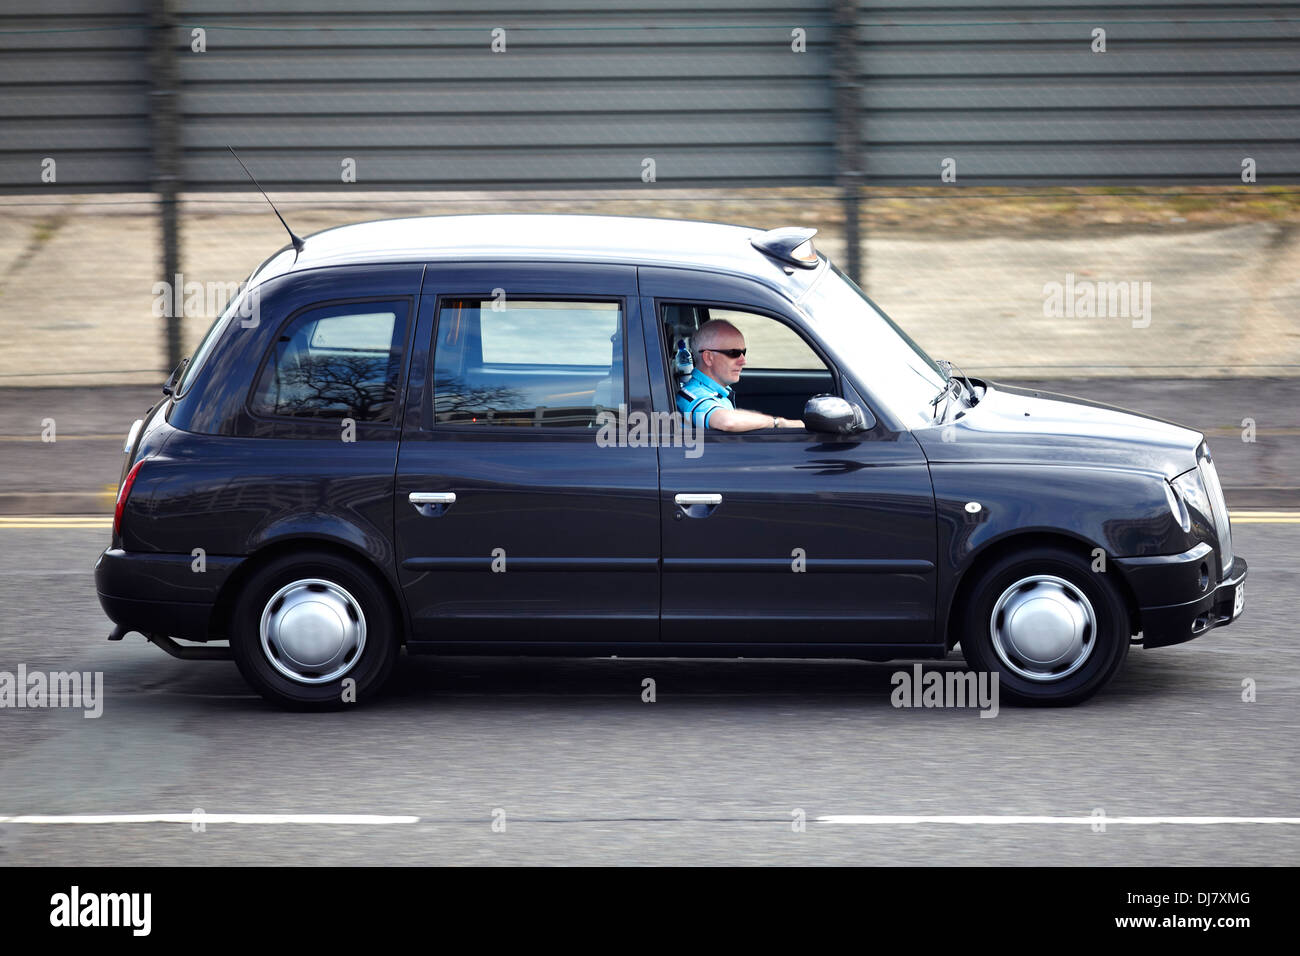 A hackney or hackney carriage (also called a cab, black cab, hack or London taxi) driving in London - Stock Image